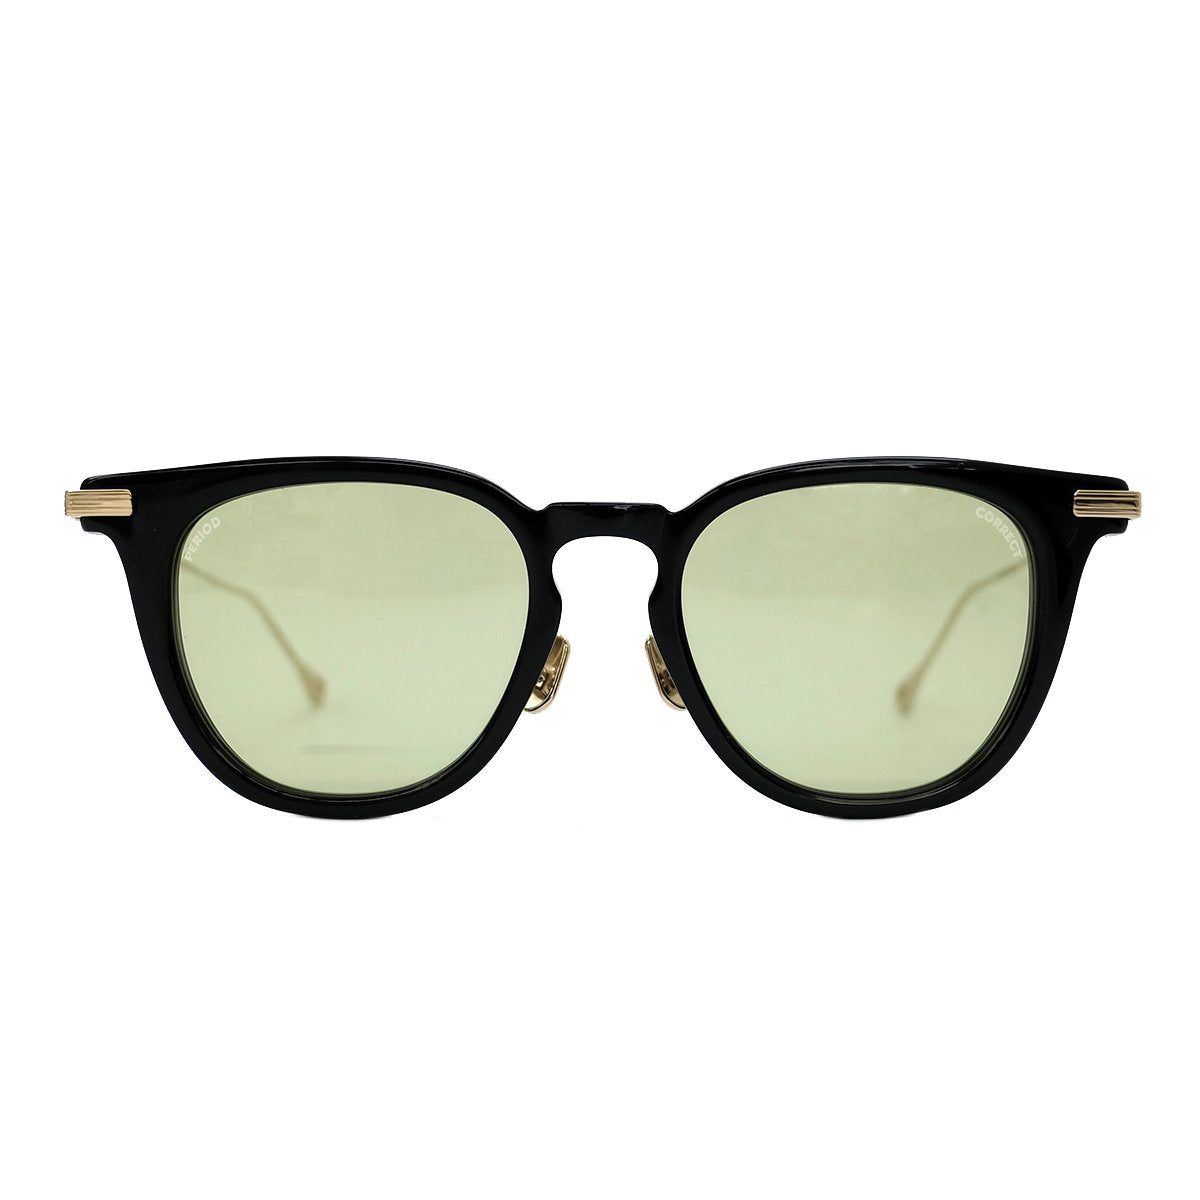 PERIOD CORRECT X NATIVE SONS HUGHES SUNGLASSES